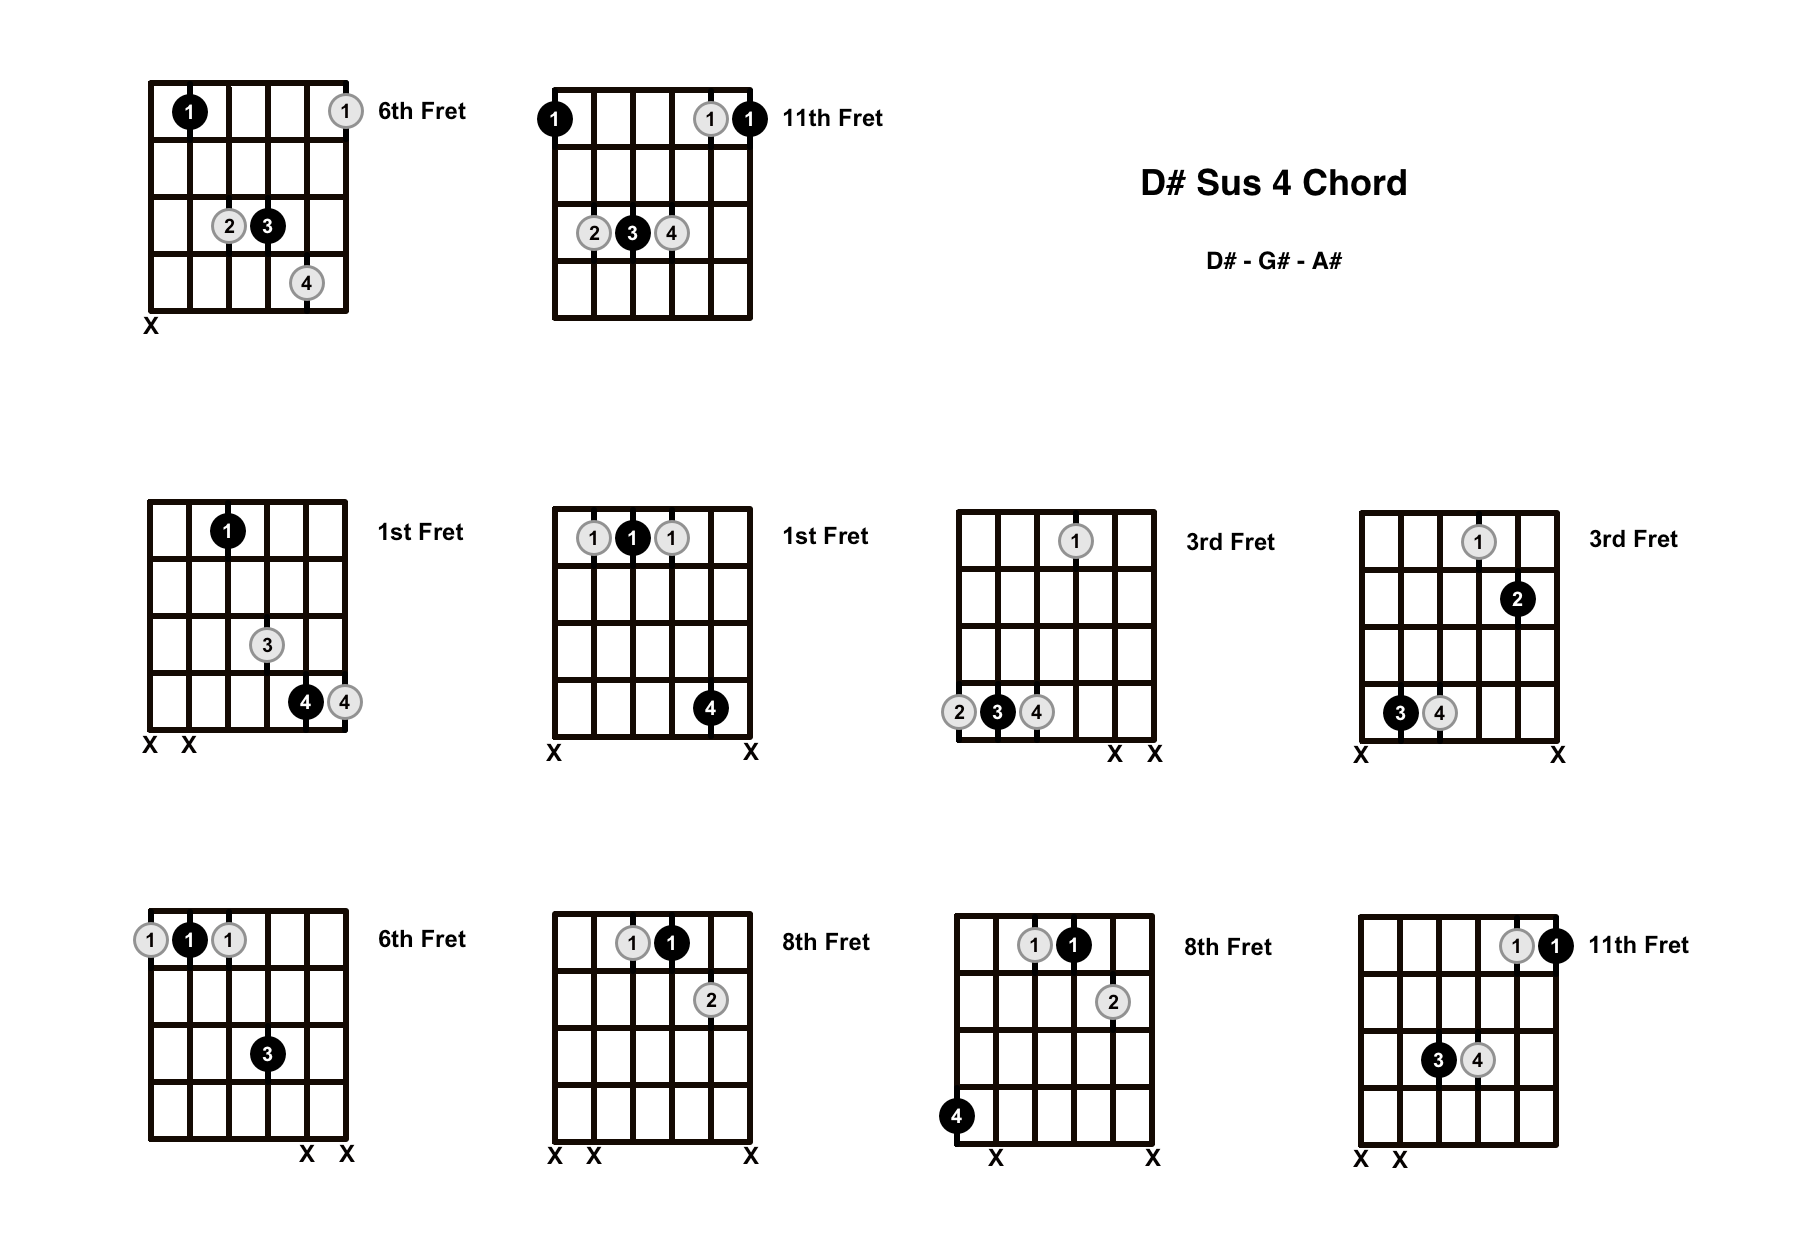 D# Sus 4 Chord On The Guitar (D Sharp Suspended 4) – Diagrams, Finger Positions and Theory